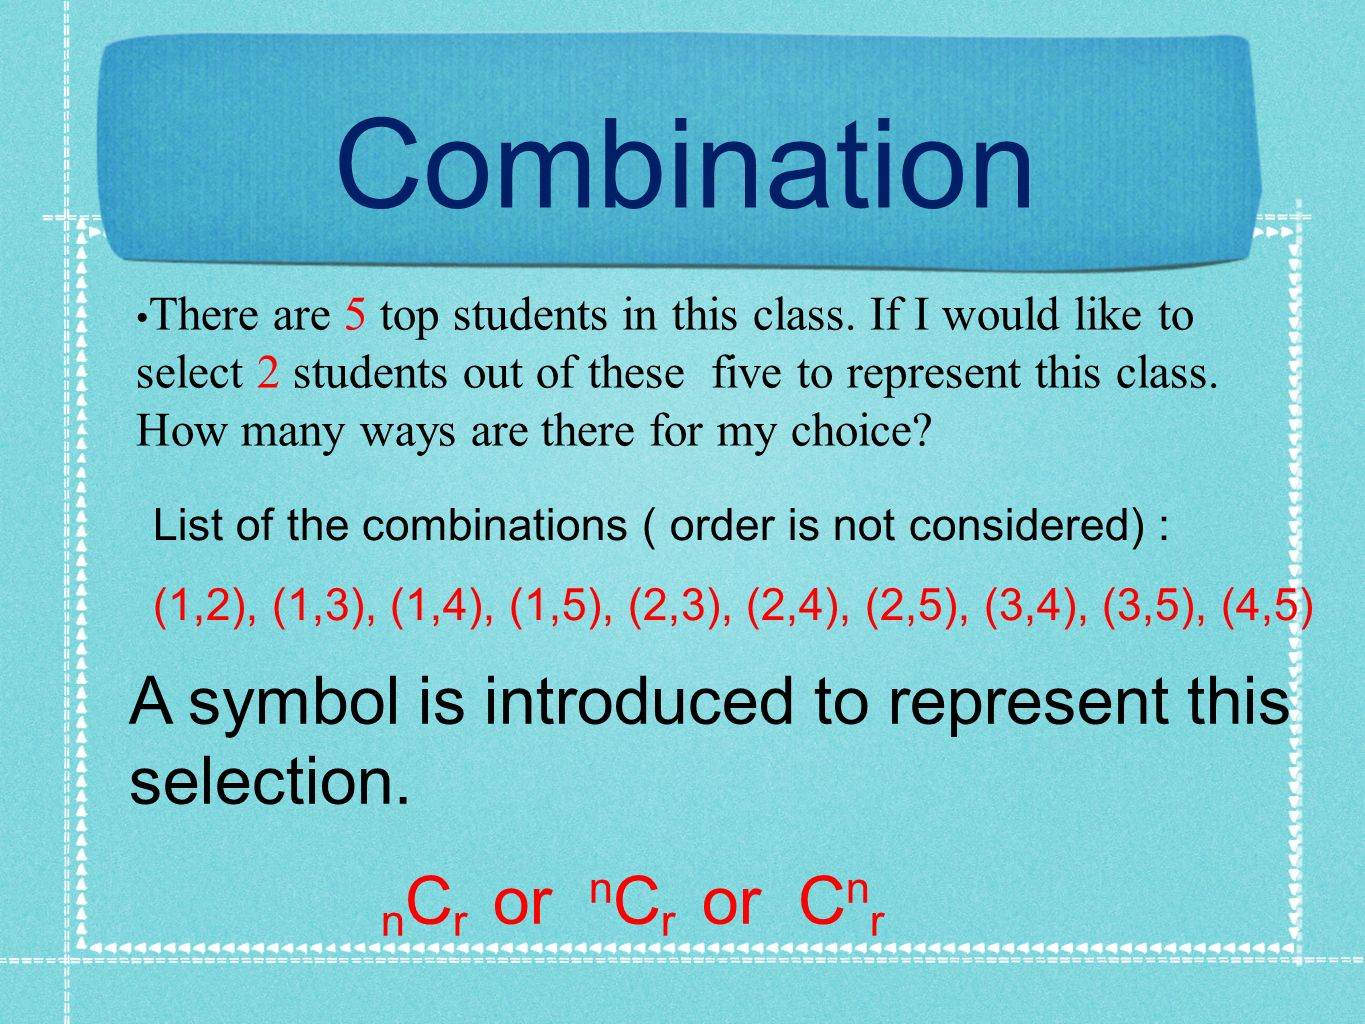 Combination A symbol is introduced to represent this selection.